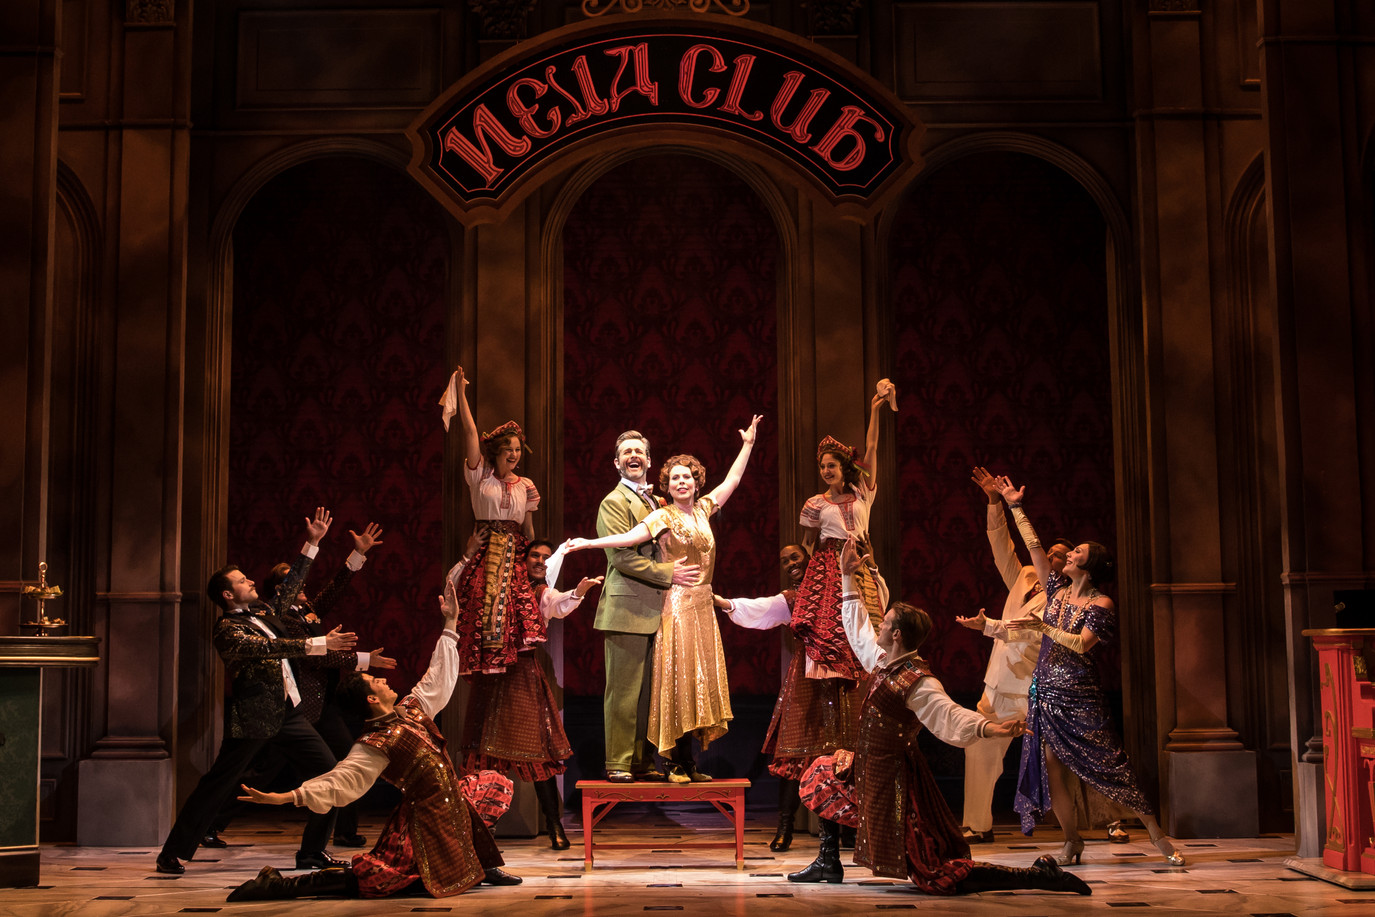 Edward Staudenmayer (Vlad), Tari Kelly (Countless Lily) and the company of the National Tour of ANASTASIA.